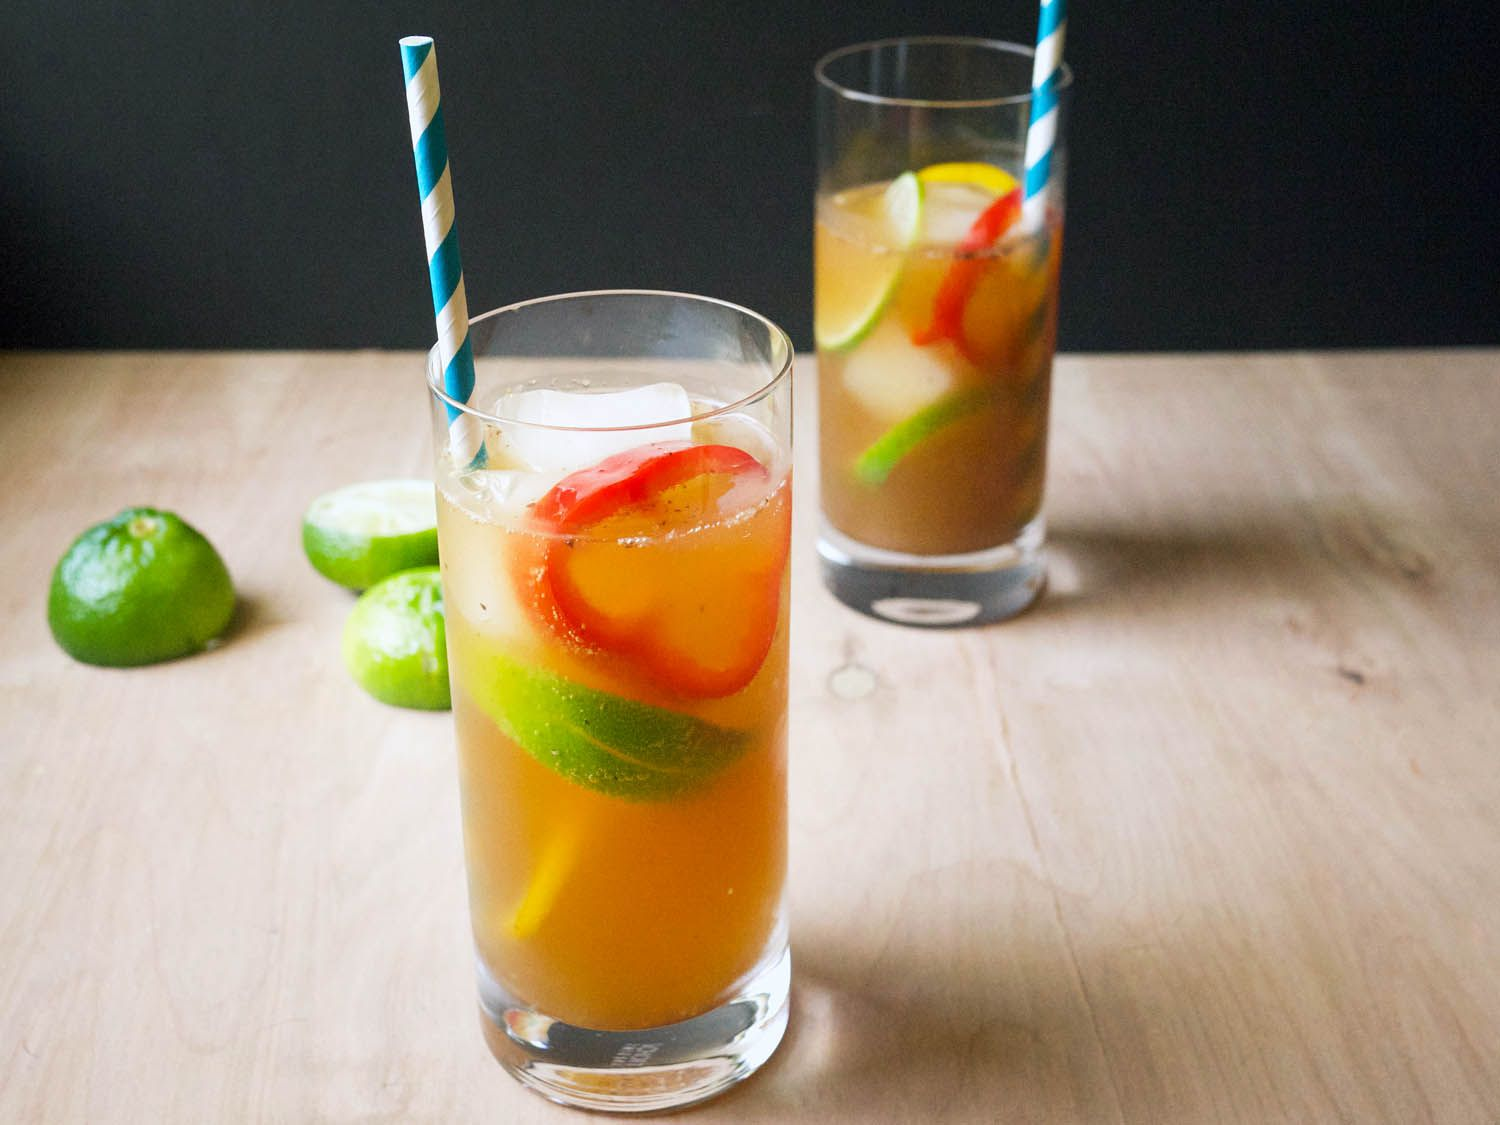 20160425-beer-cocktail-recipes-roundup-08.jpg